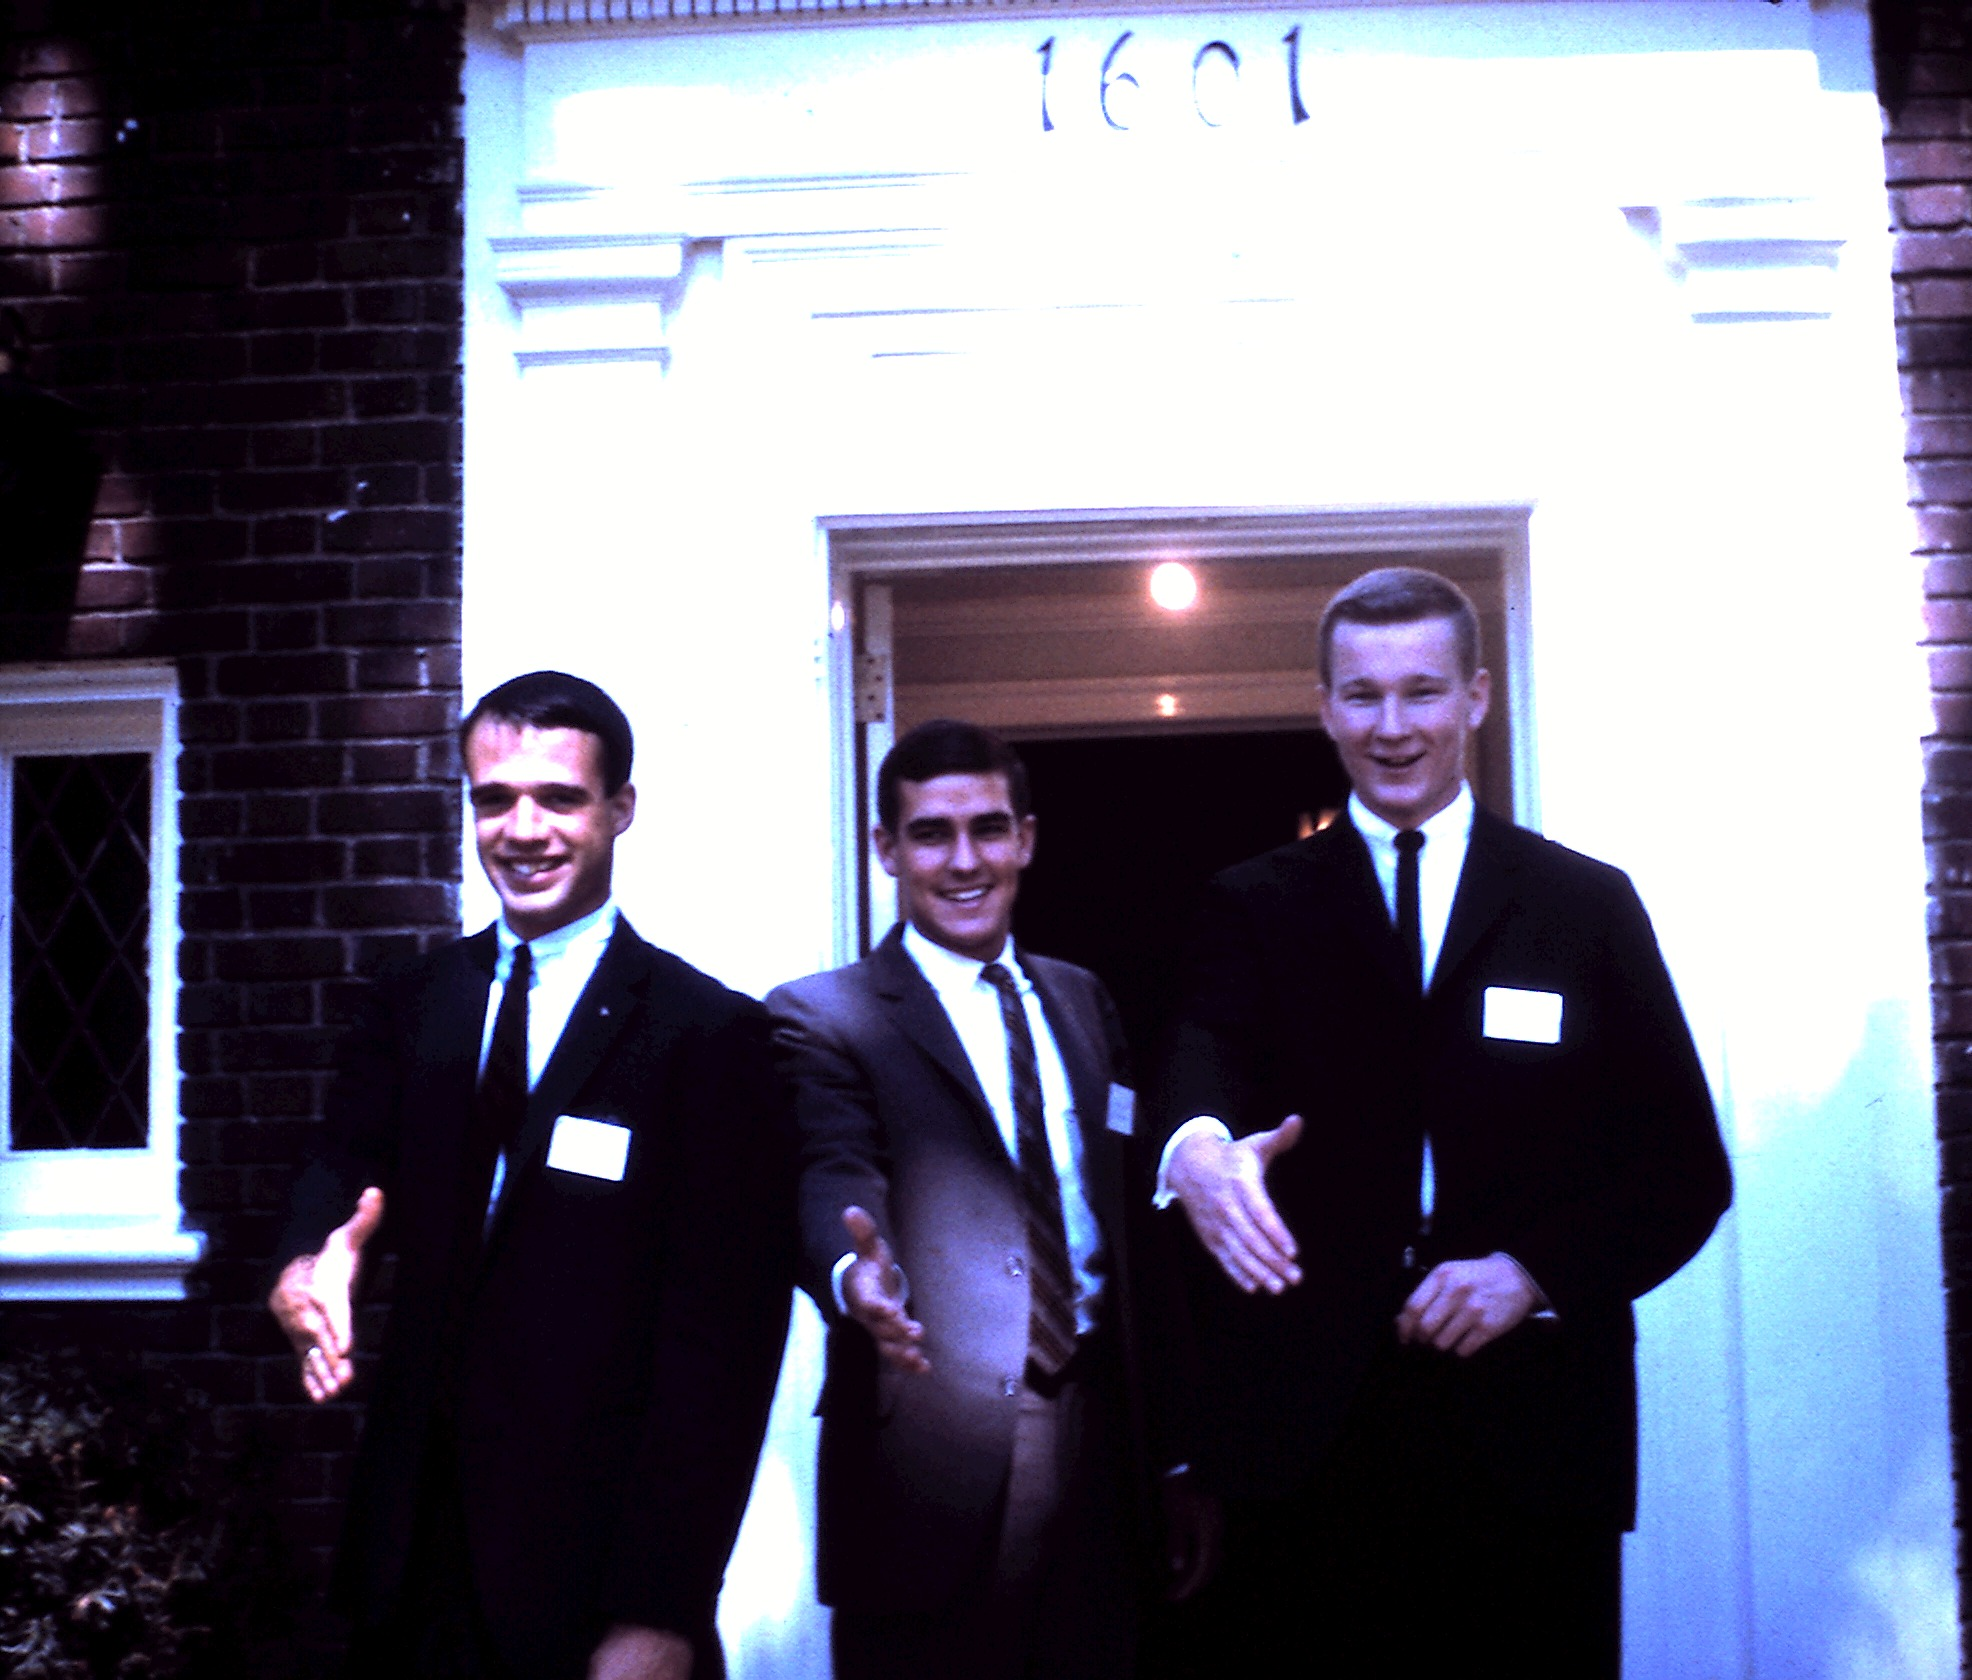 Brothers John Moorhead '63, David Sheldon '64, and Dennis Phelps '64 during Rush, 1963